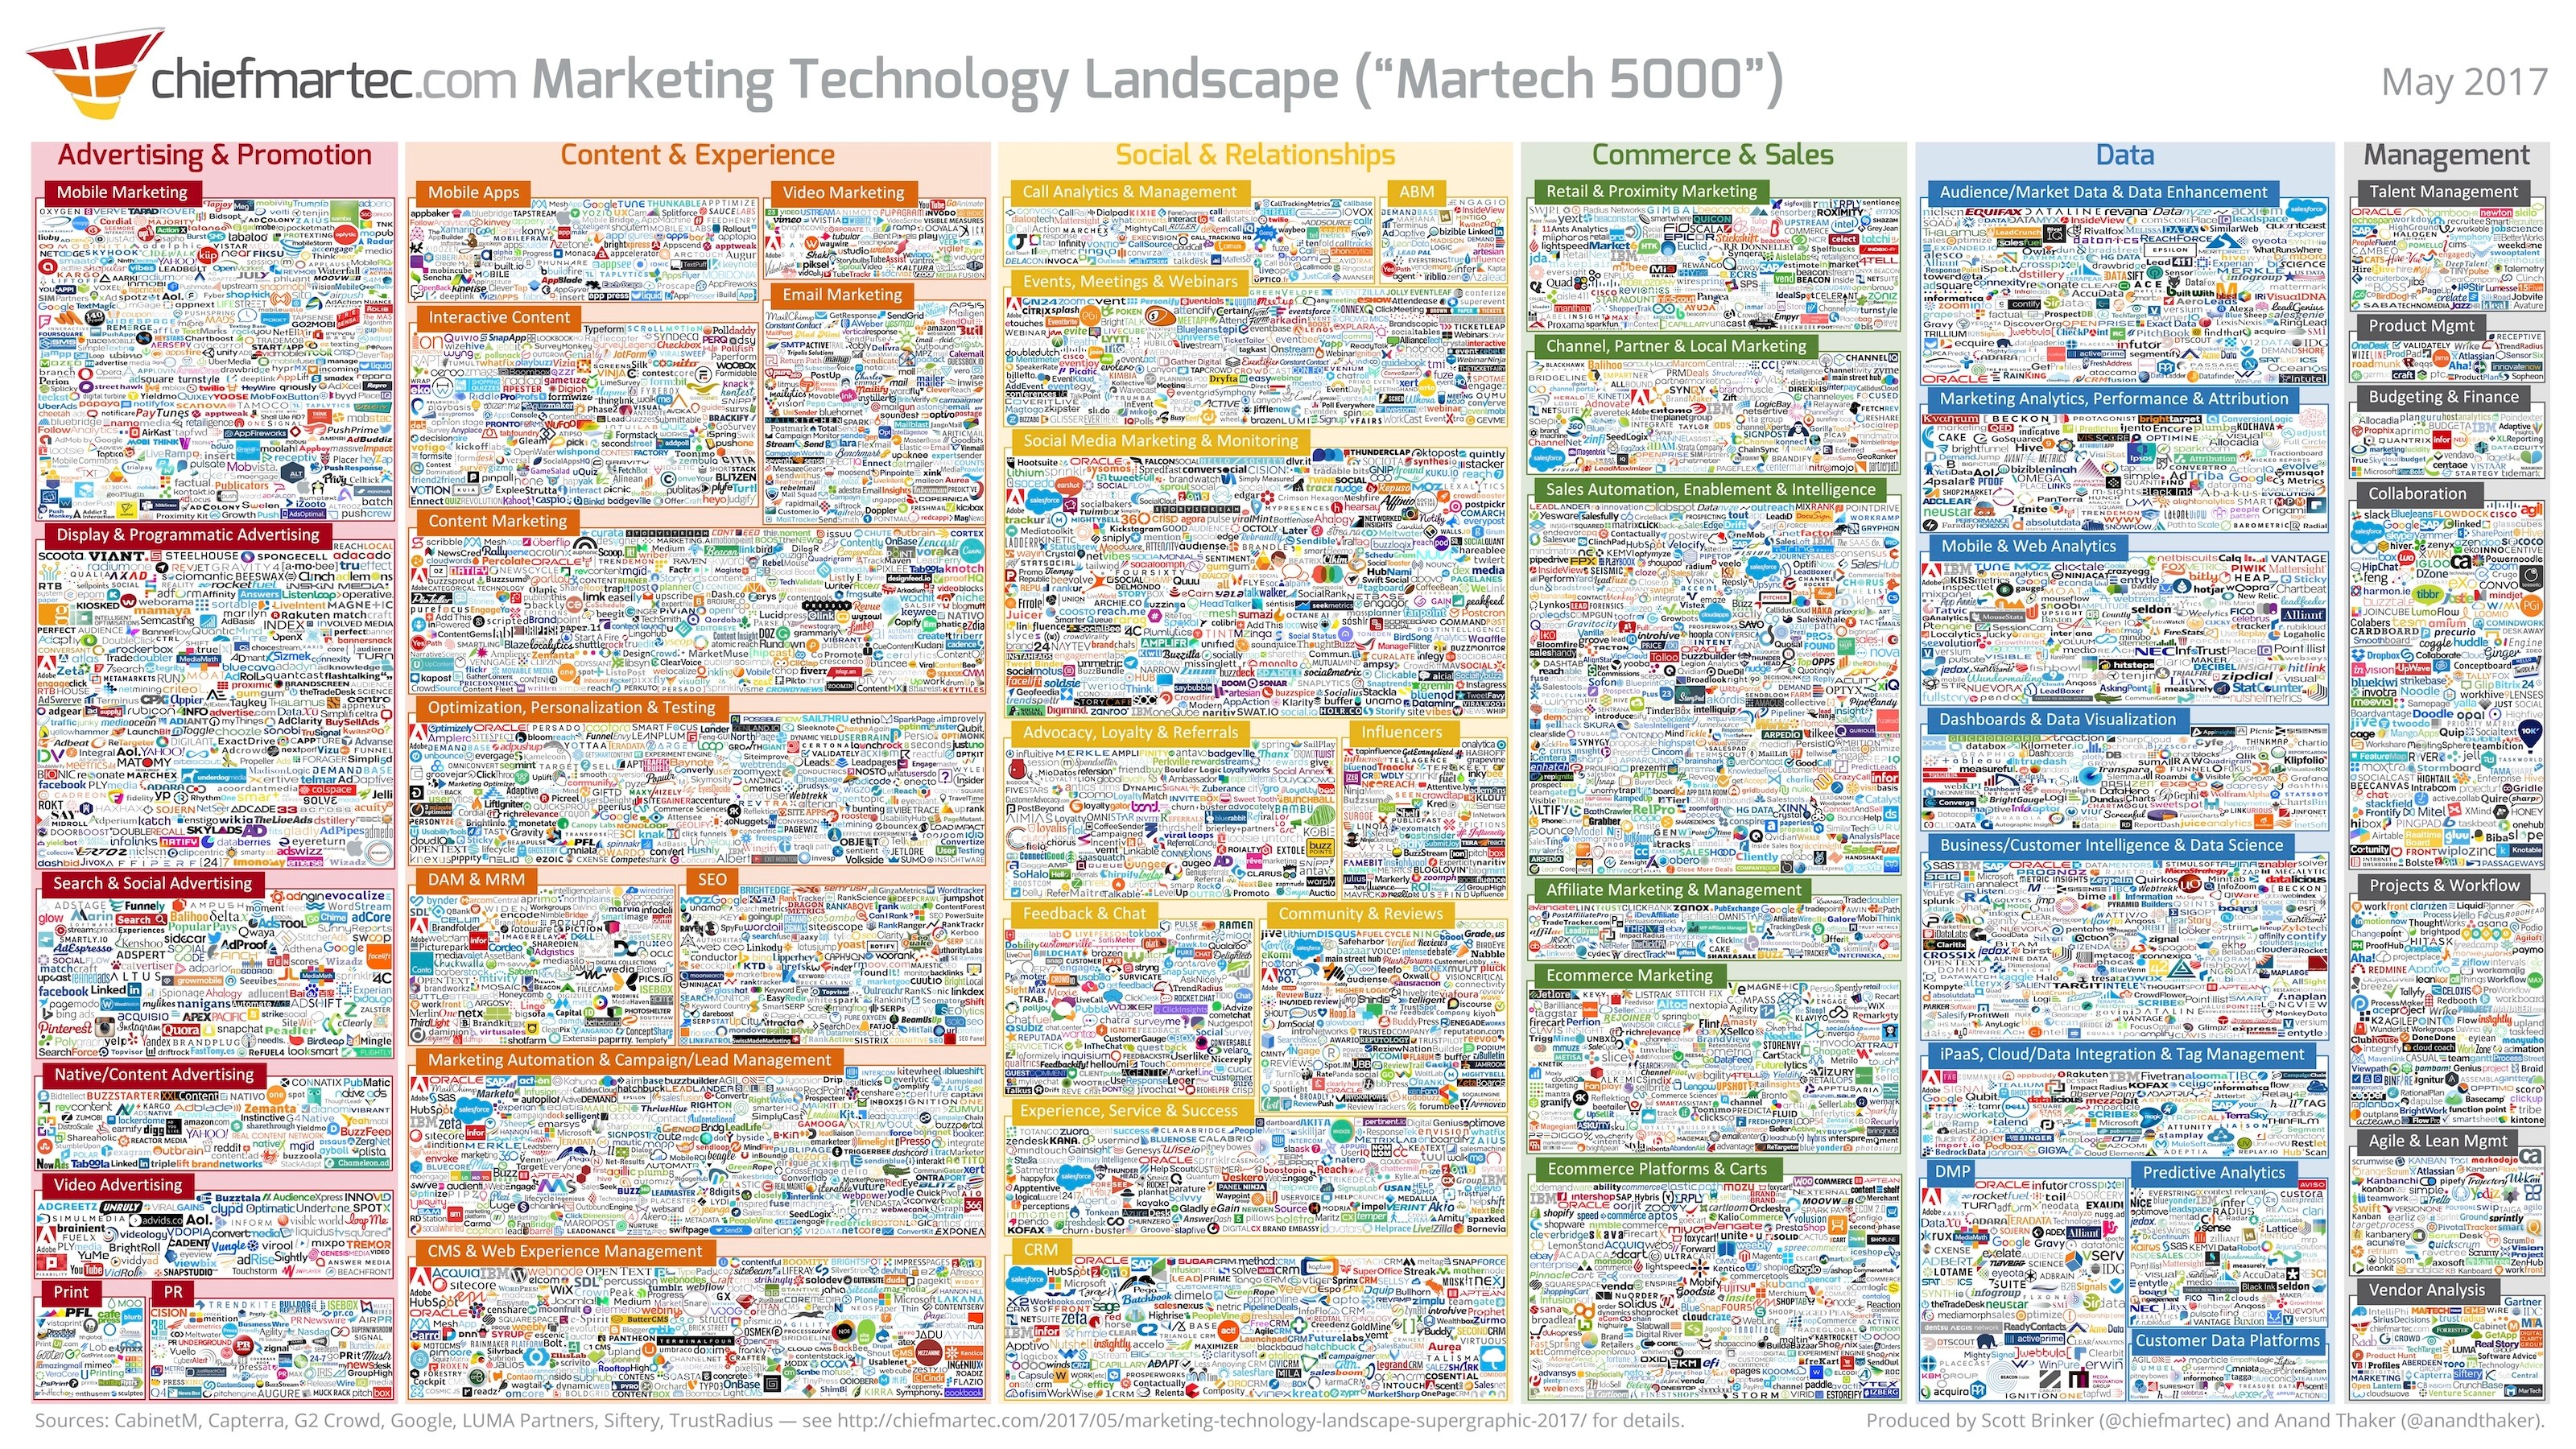 Five Ways To Make Martech Work For You In